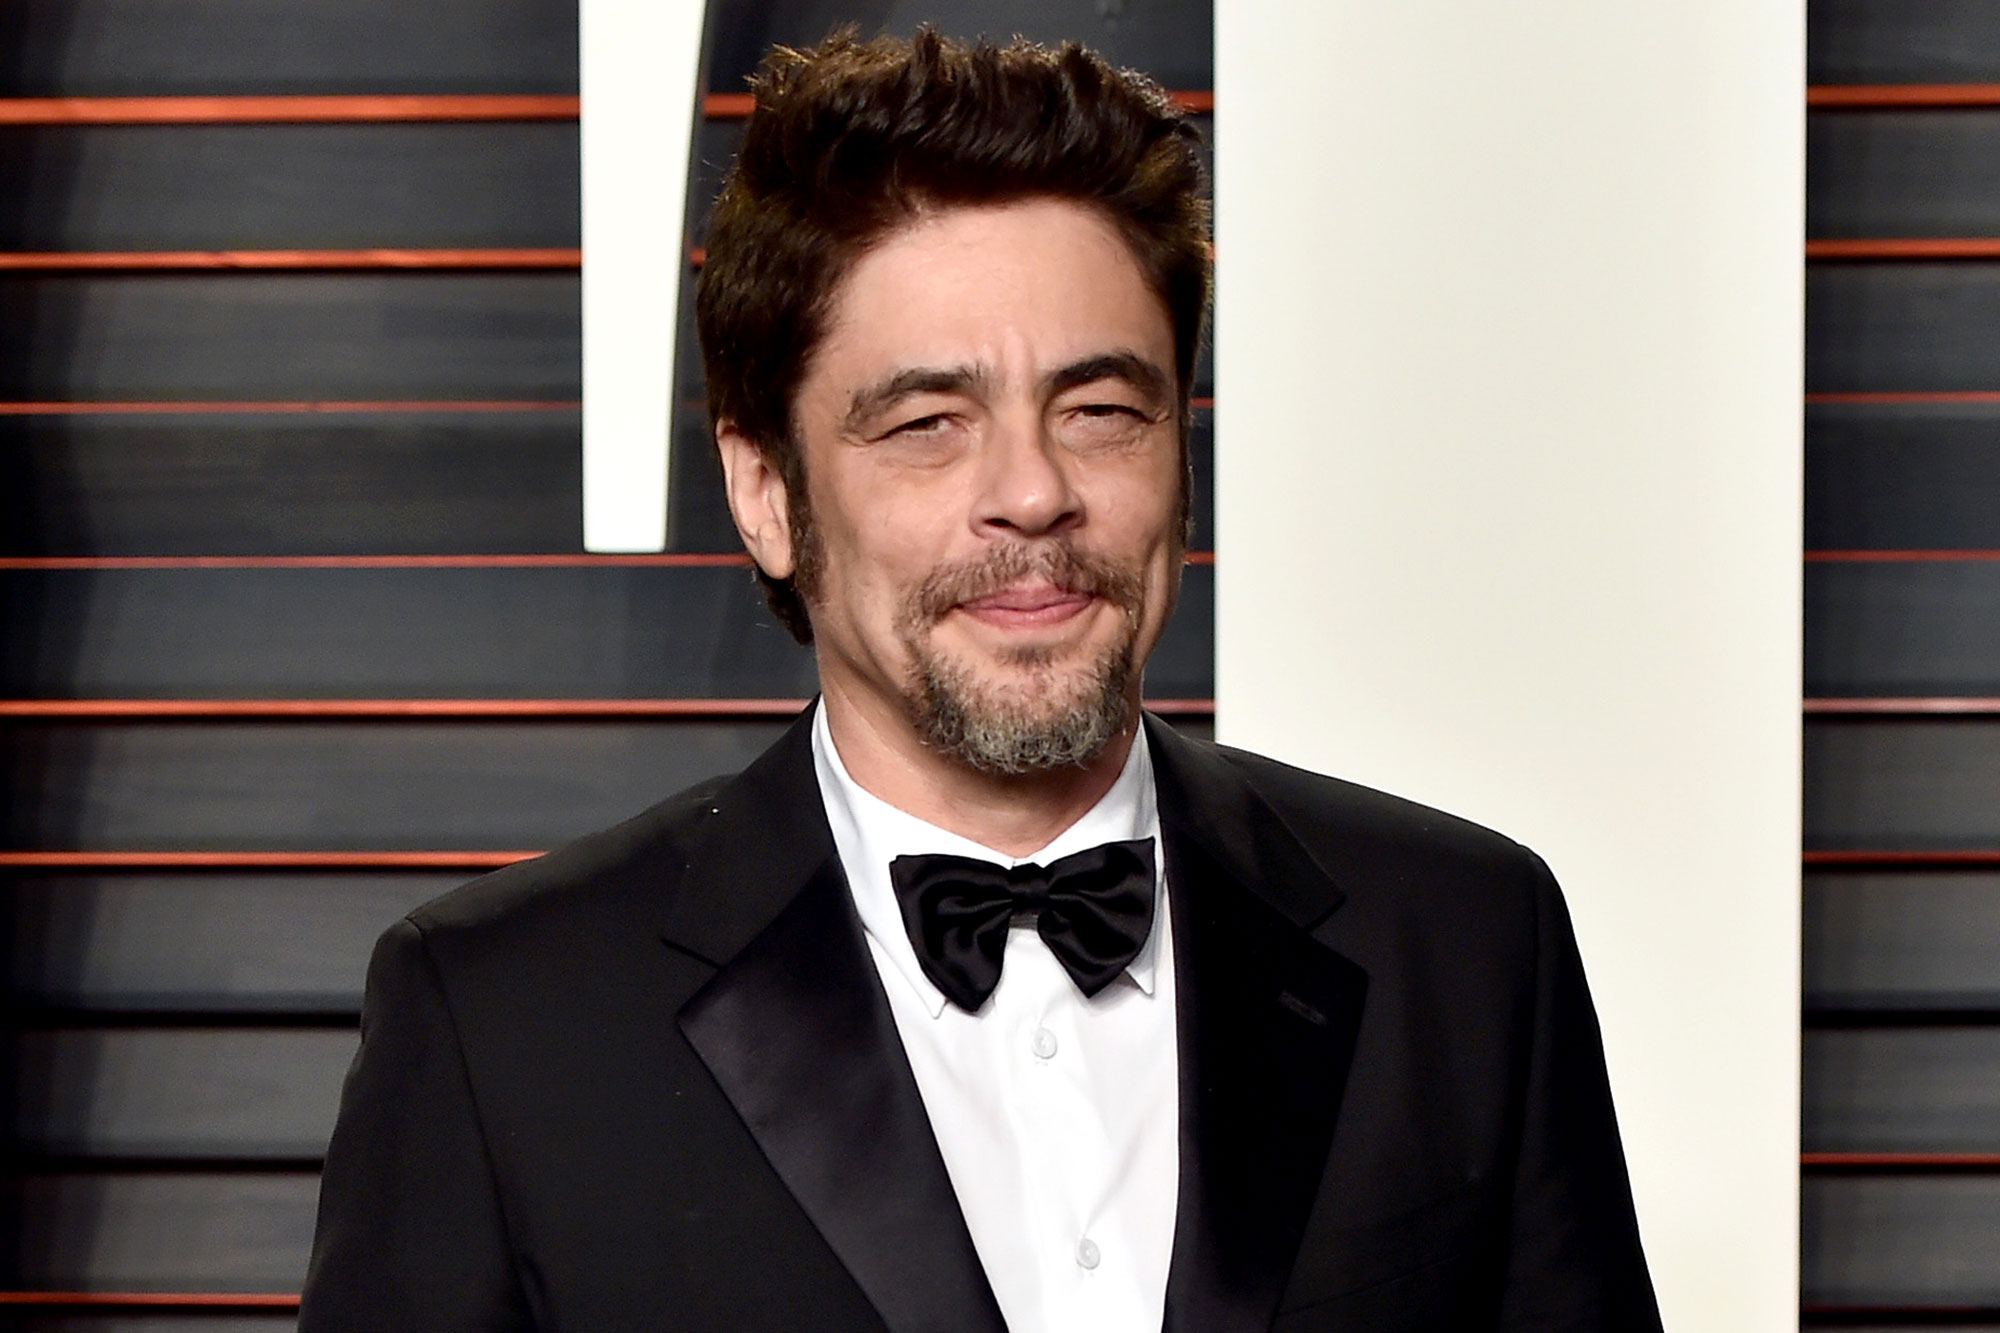 Benicio-Del-Toro-Height-Weight-Age-Size-Affairs-Body-Stats